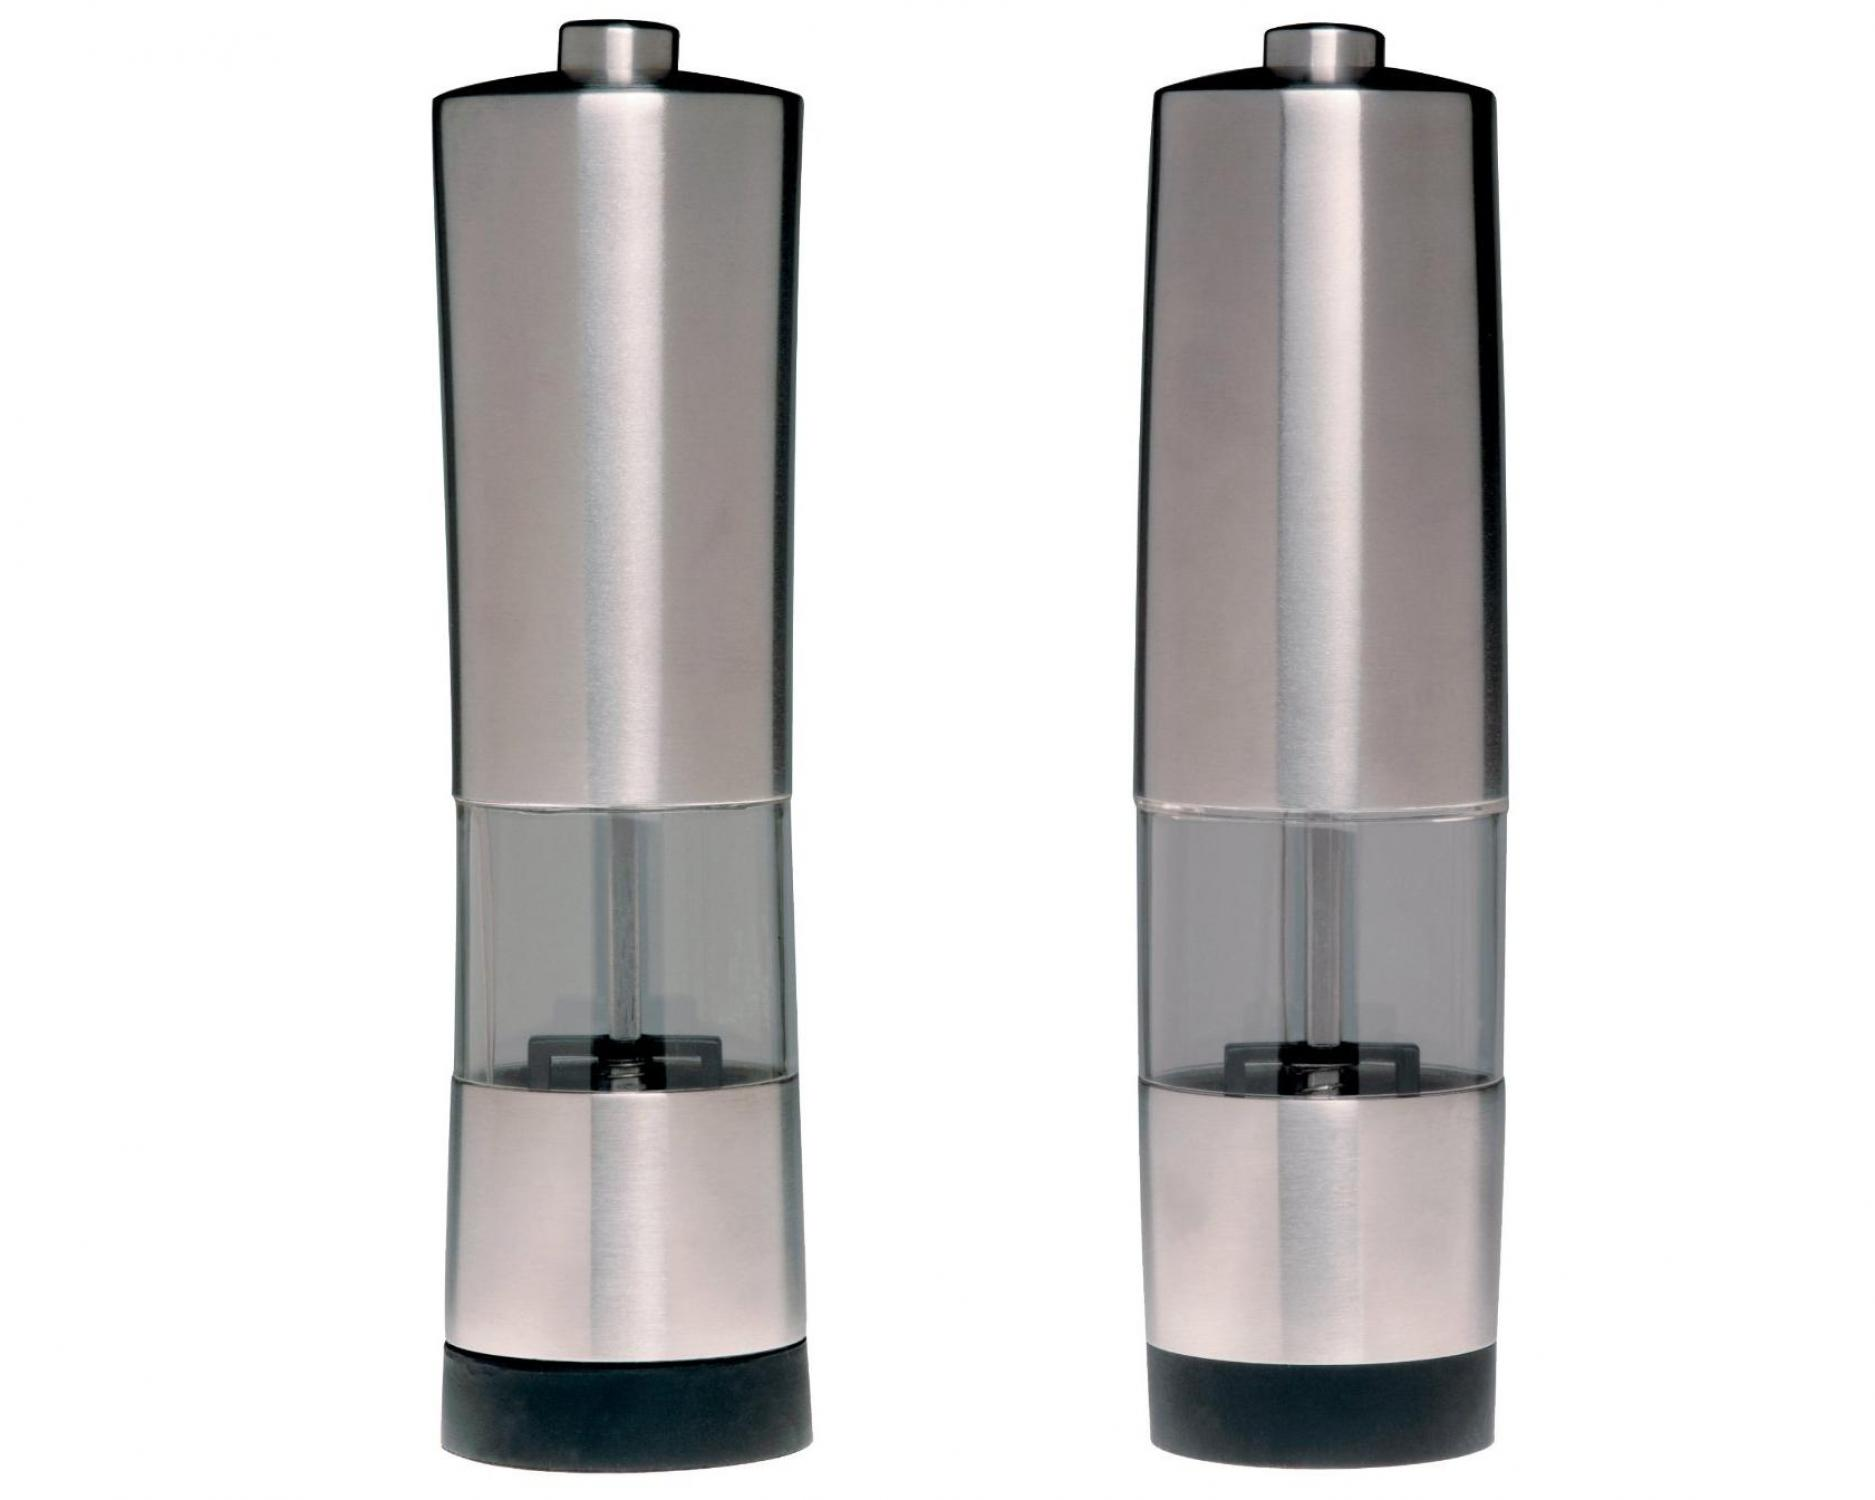 BergHOFF 1108971 Geminis Electronic Salt and Pepper Mill by BergHOFF